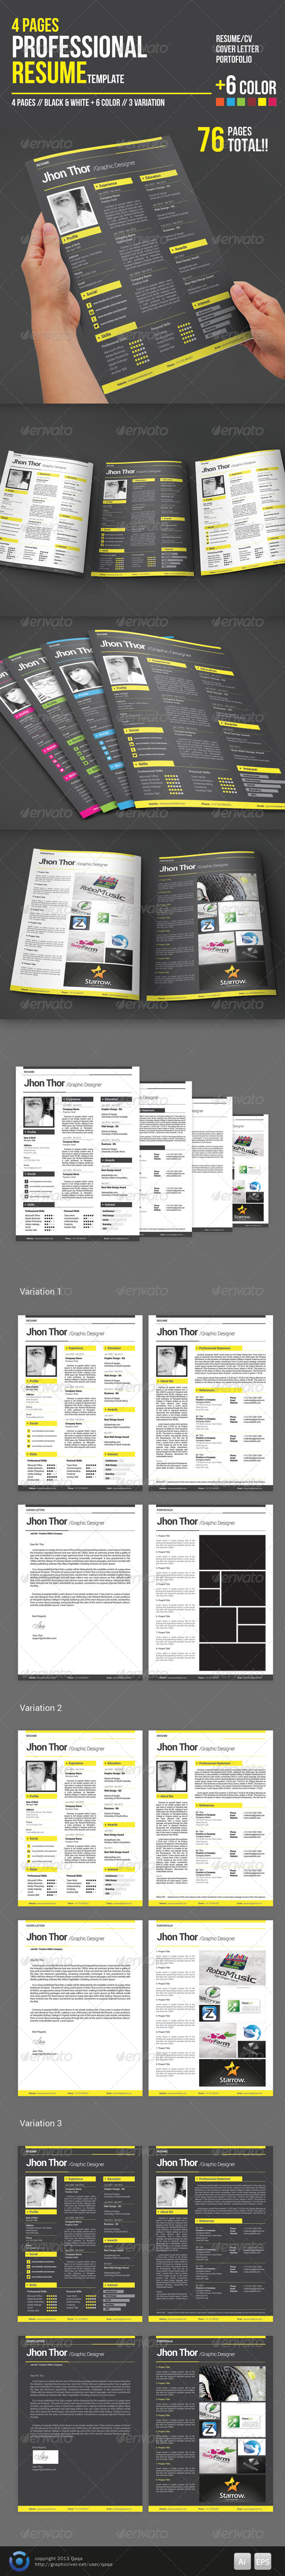 GraphicRiver 4 Pages Professional Resume Template 6316253